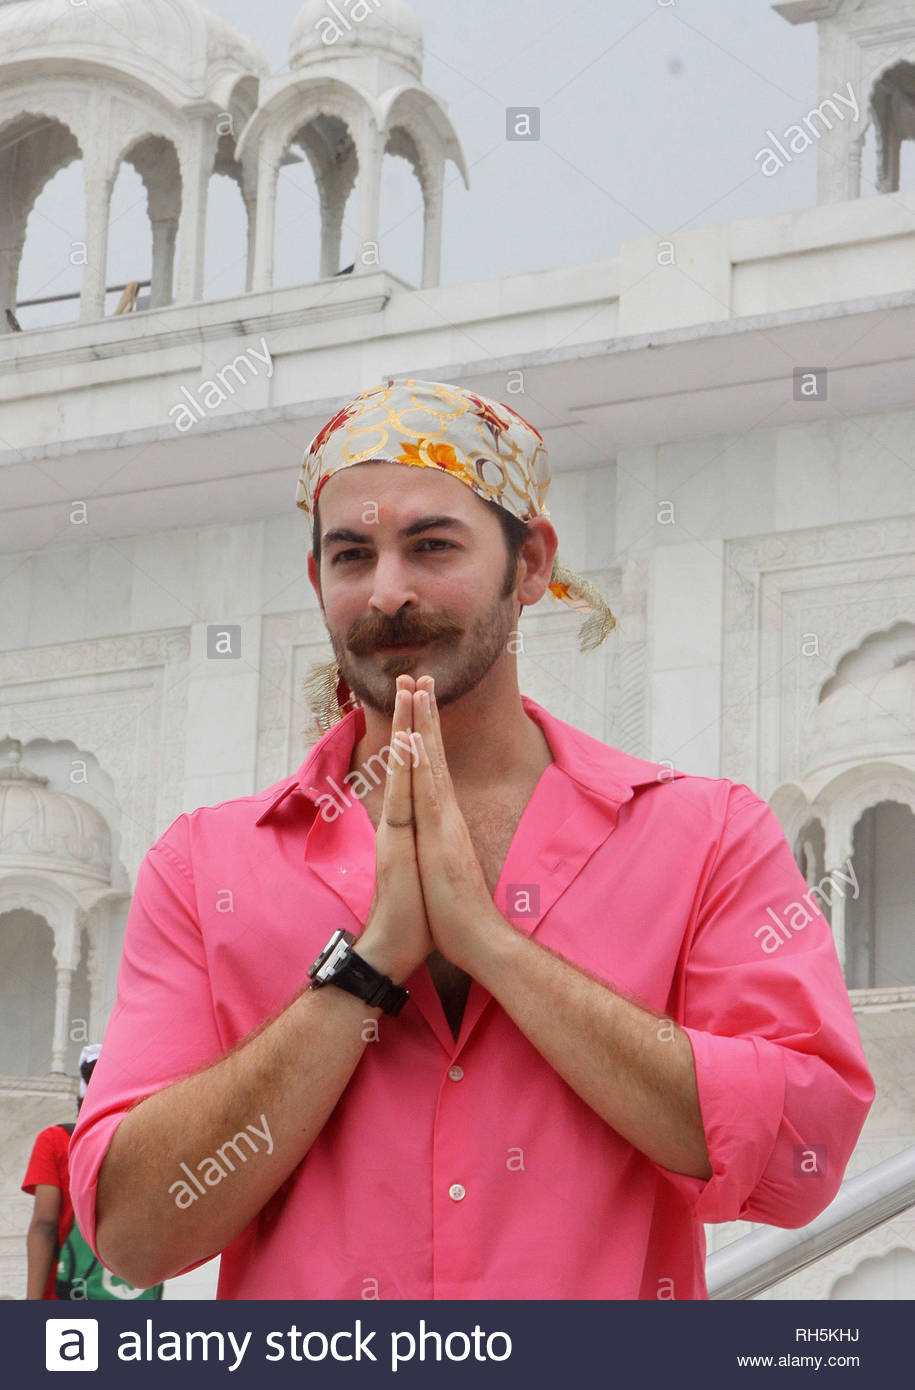 Bollywood actor Neil Nitin Mukesh offers prayer at the Bangla Saheb Gurudwara for the success of his latest movie Shortcut Romeo, in New Delhi, India on June 18, 2013. Shortcut Romeo, scheduled for release on June 21, is a romantic crime thriller produced by Susi Ganeshan which is a Hindi remake of the filmmakerÕs own Tamil film Thiruttu Payale, starring Neil Nitin Mukesh, Puja Gupta and Ameesha Patel. The film was screened at Marche du Film at Cannes Film Festival in May 2013. (Imtiyaz Khan) Stock Photo